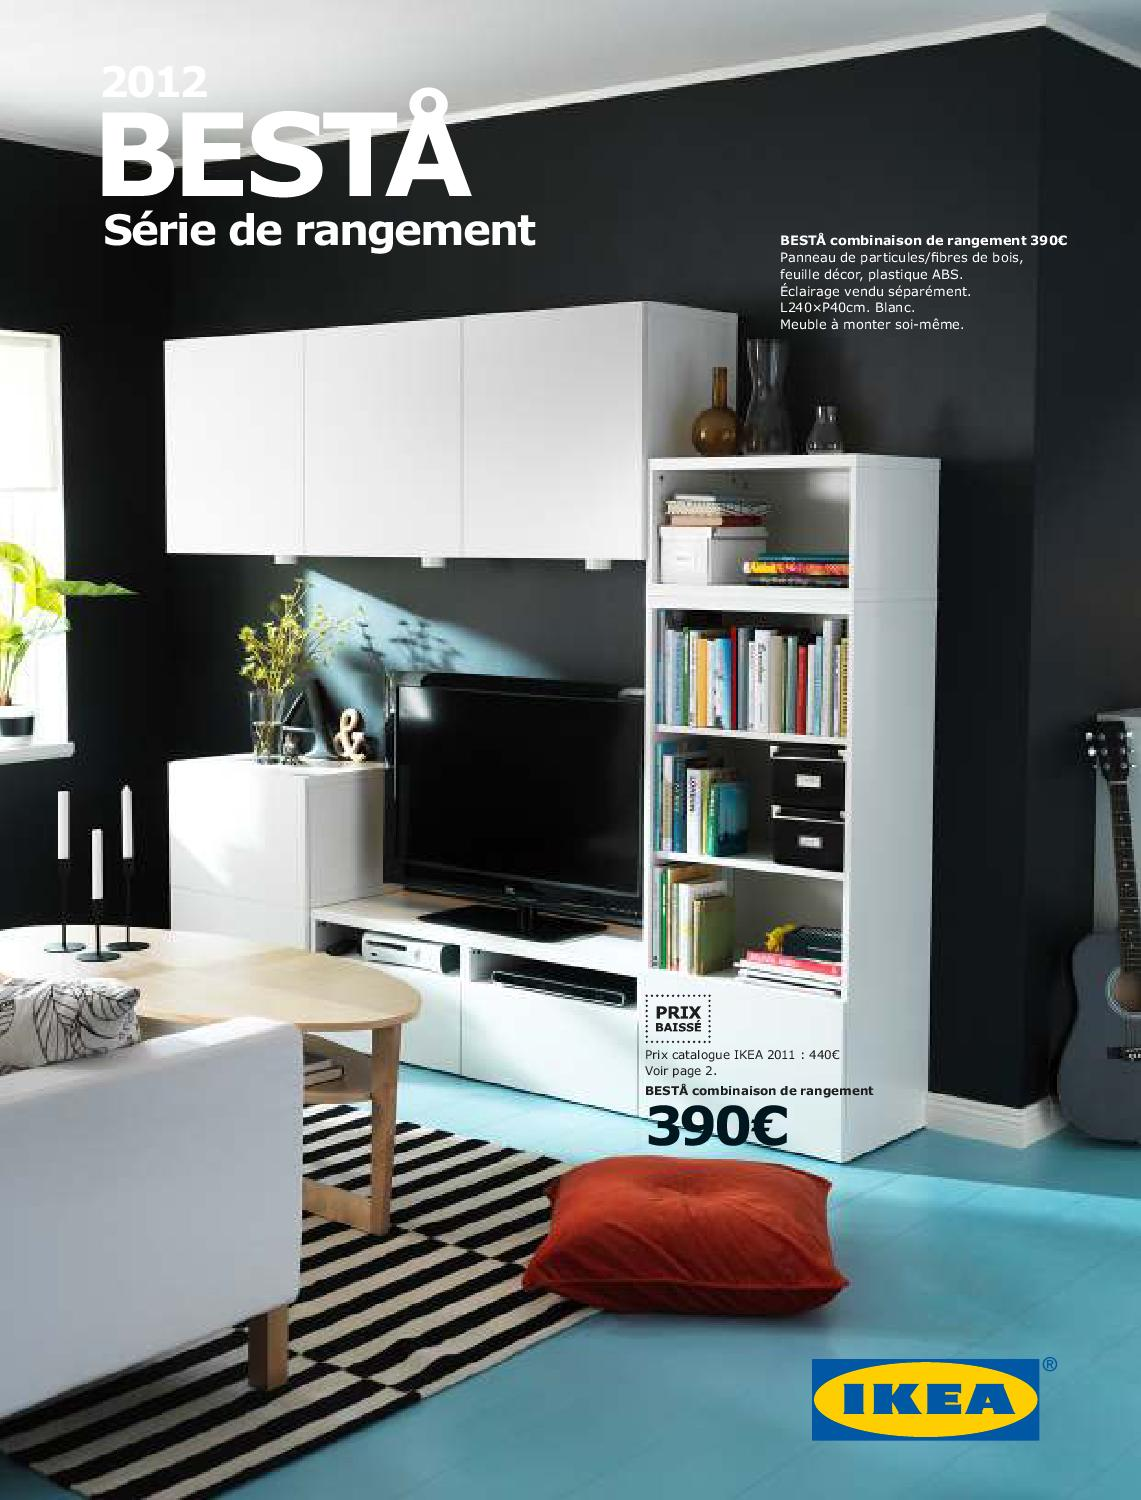 Range Brochure Besta 2012 By Karim Bennaceur Issuu